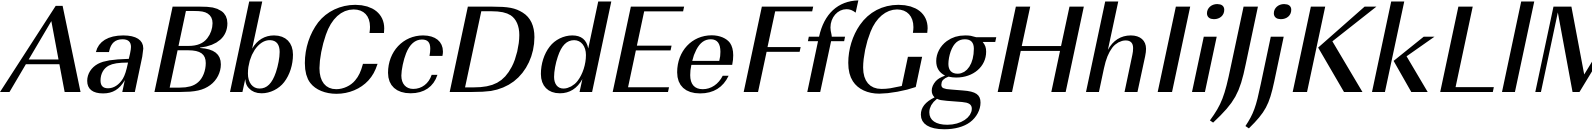 Imperial URW Medium Oblique Font